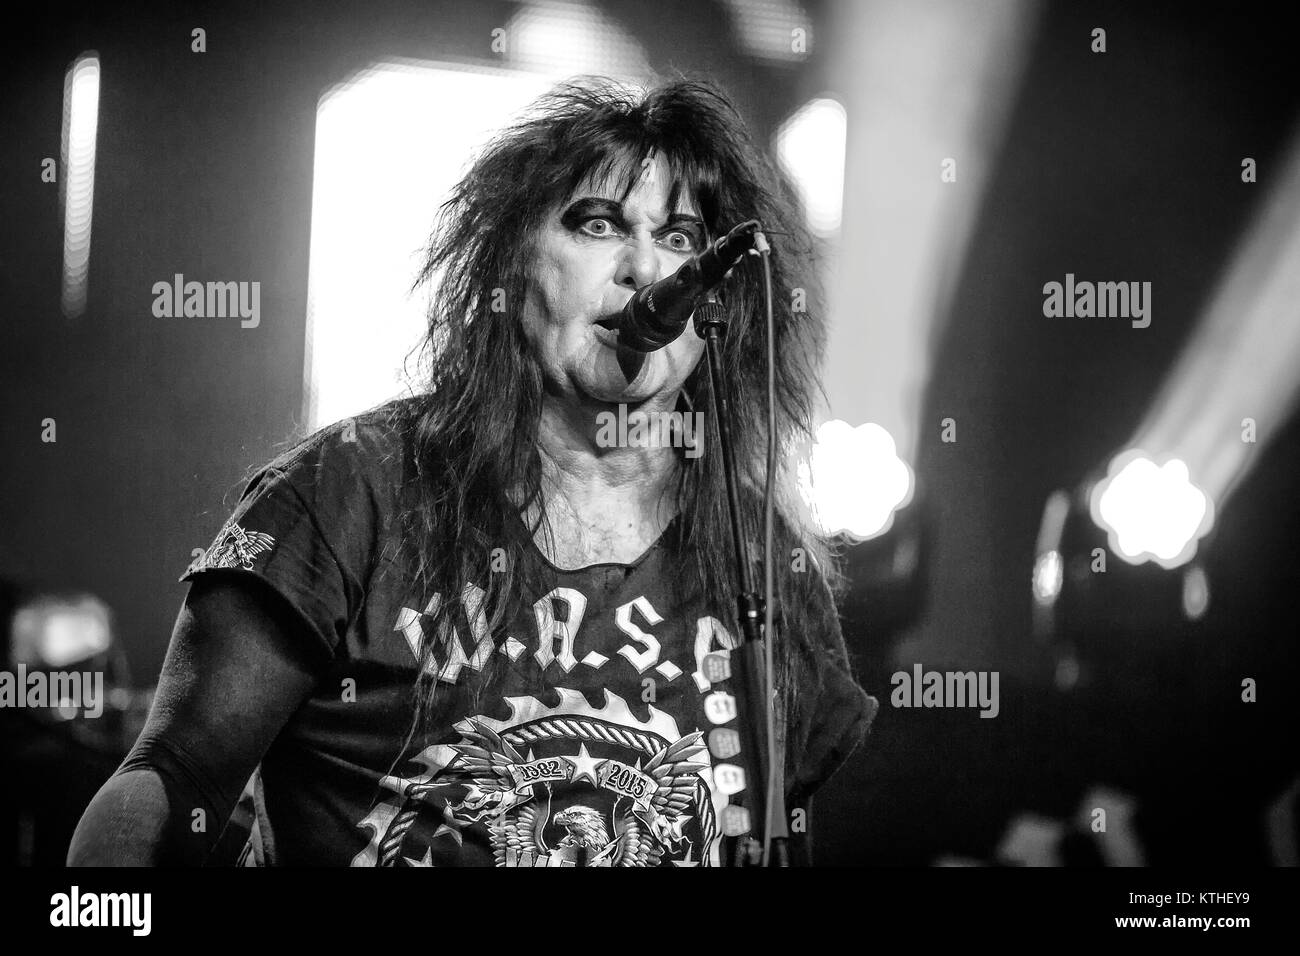 The American glam metal band W.A.S.P. performs a live concert at Union Scene in Oslo. Here the band's last remaining - Stock Image